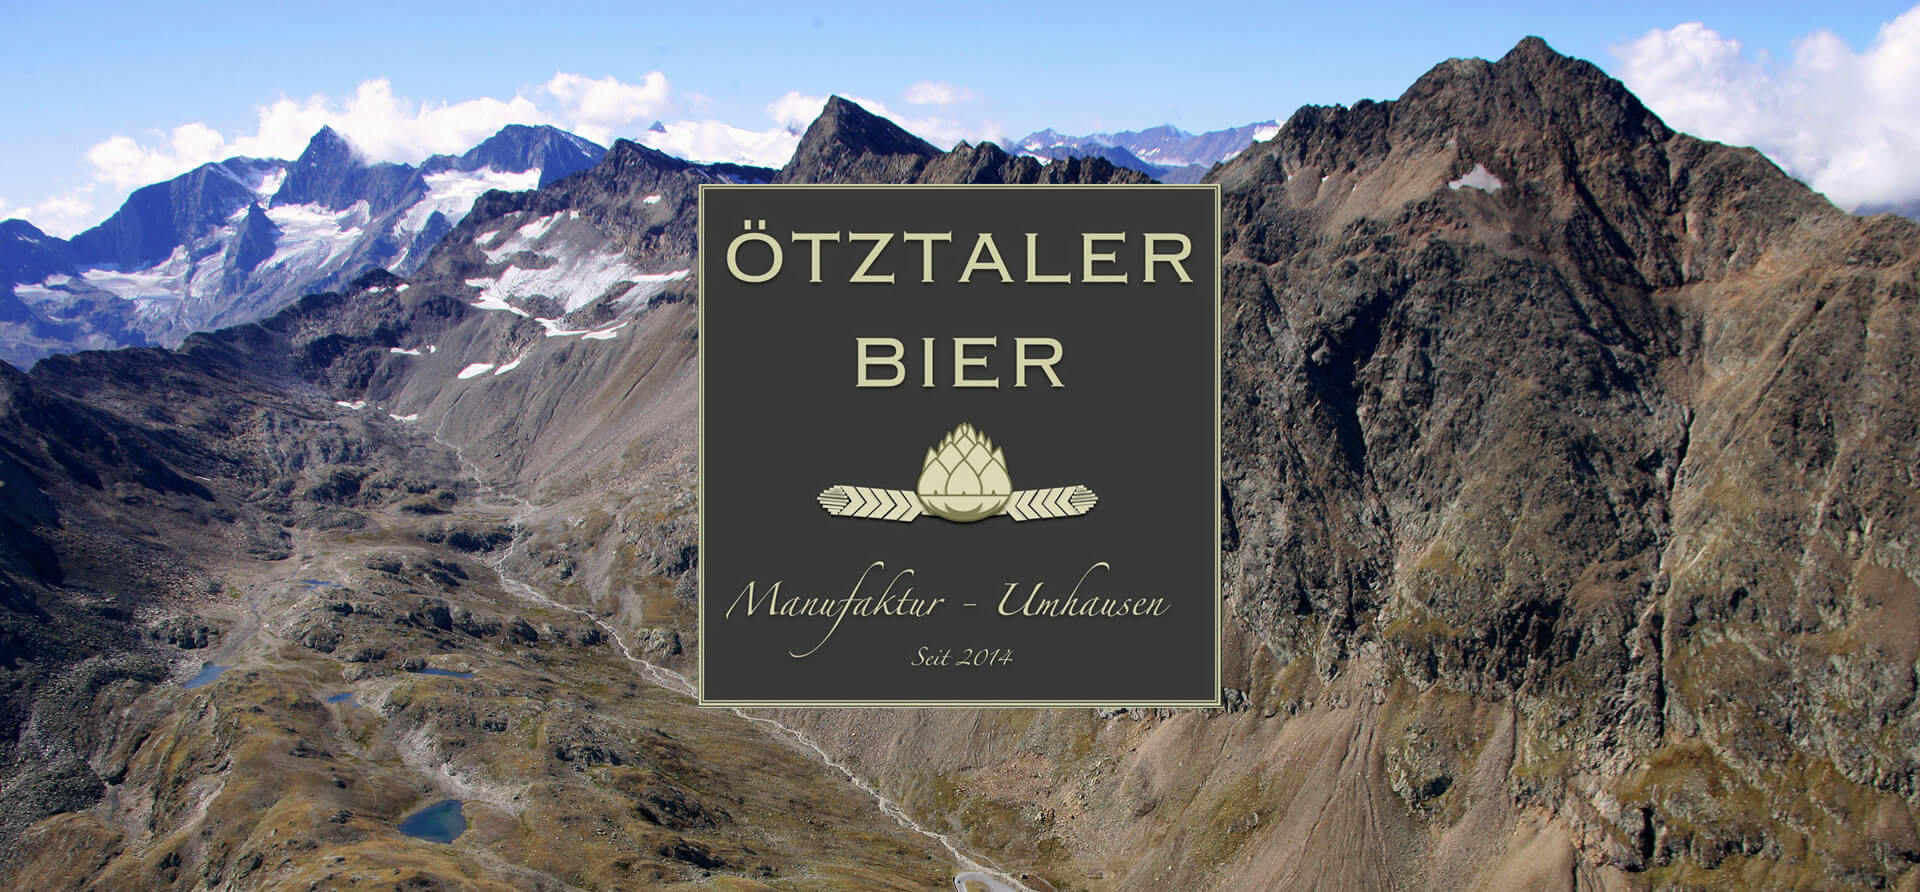 For beer lovers, it is worth booking a tour of the Ötztaler Beer Brewery by personal appointment, where you can also sample the beer.